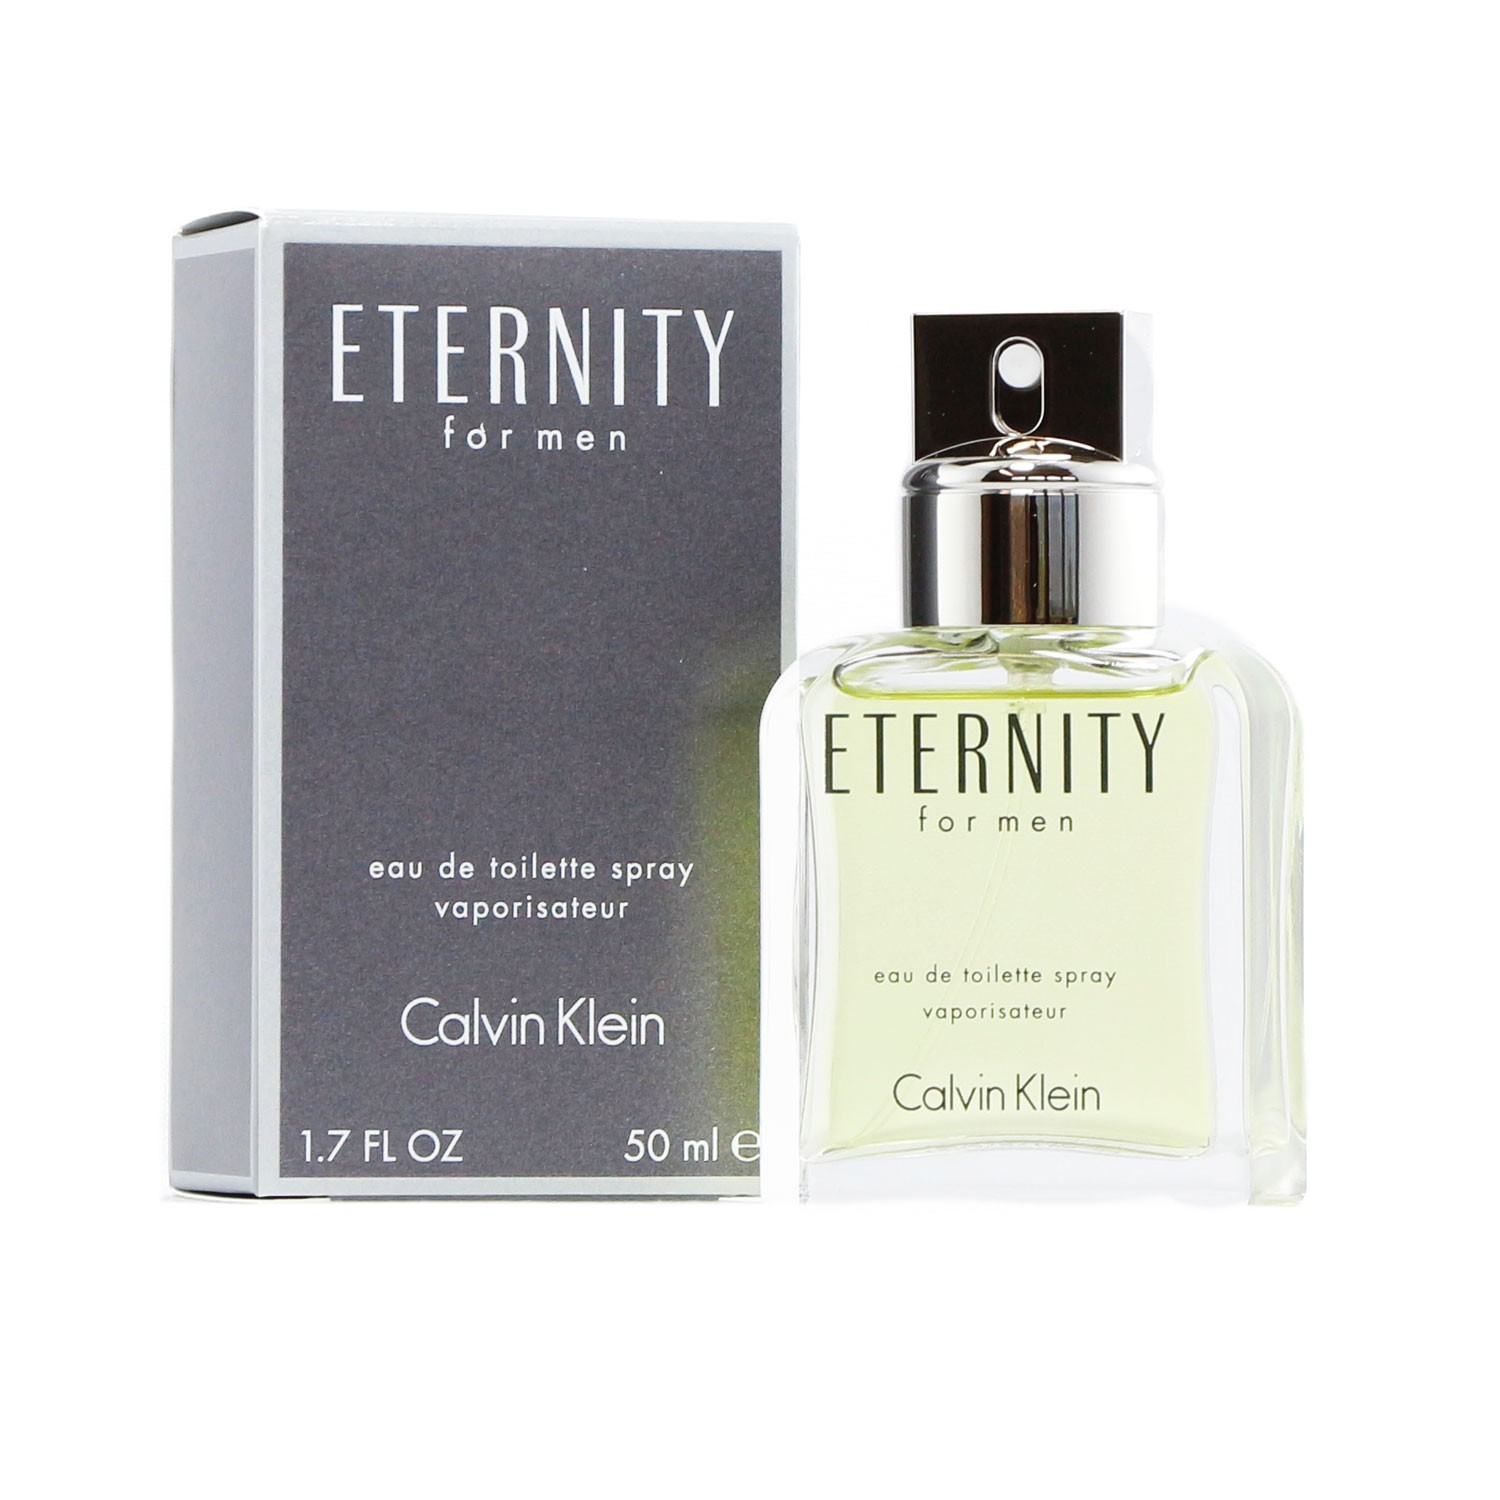 Eternity For Men - Eau De Toilette Spray